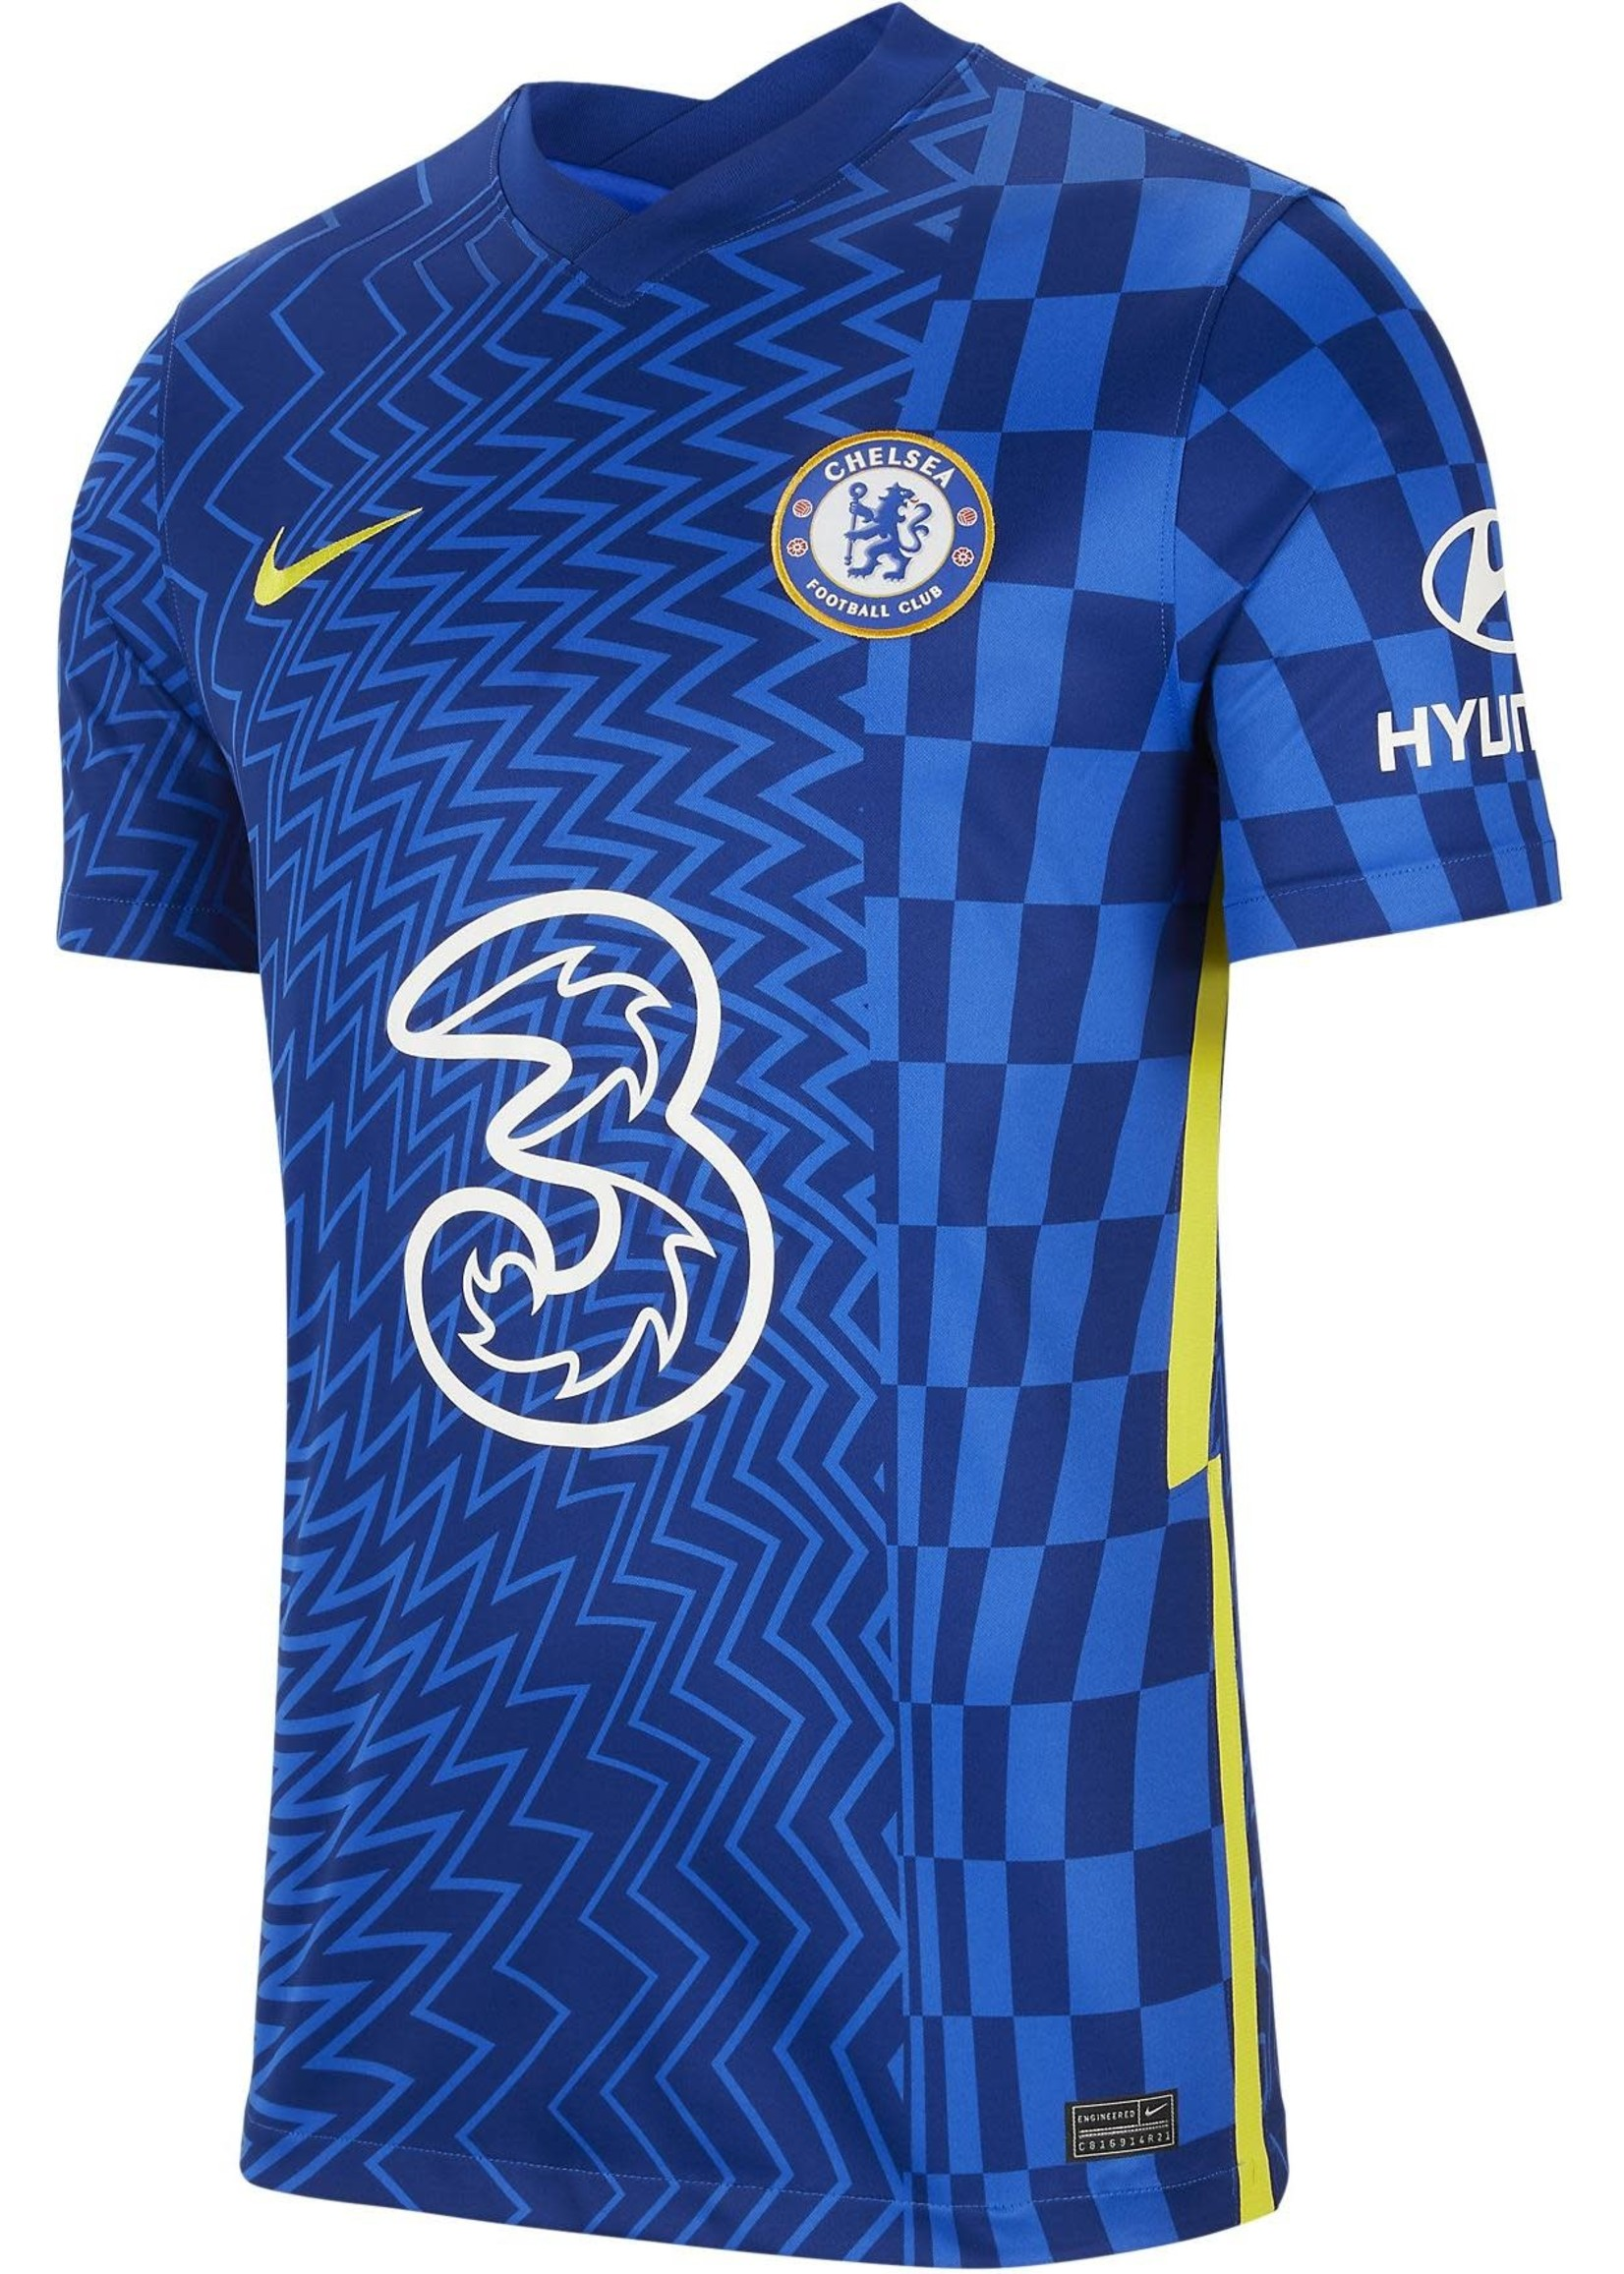 Nike CHELSEA 2021/2022 HOME JERSEY